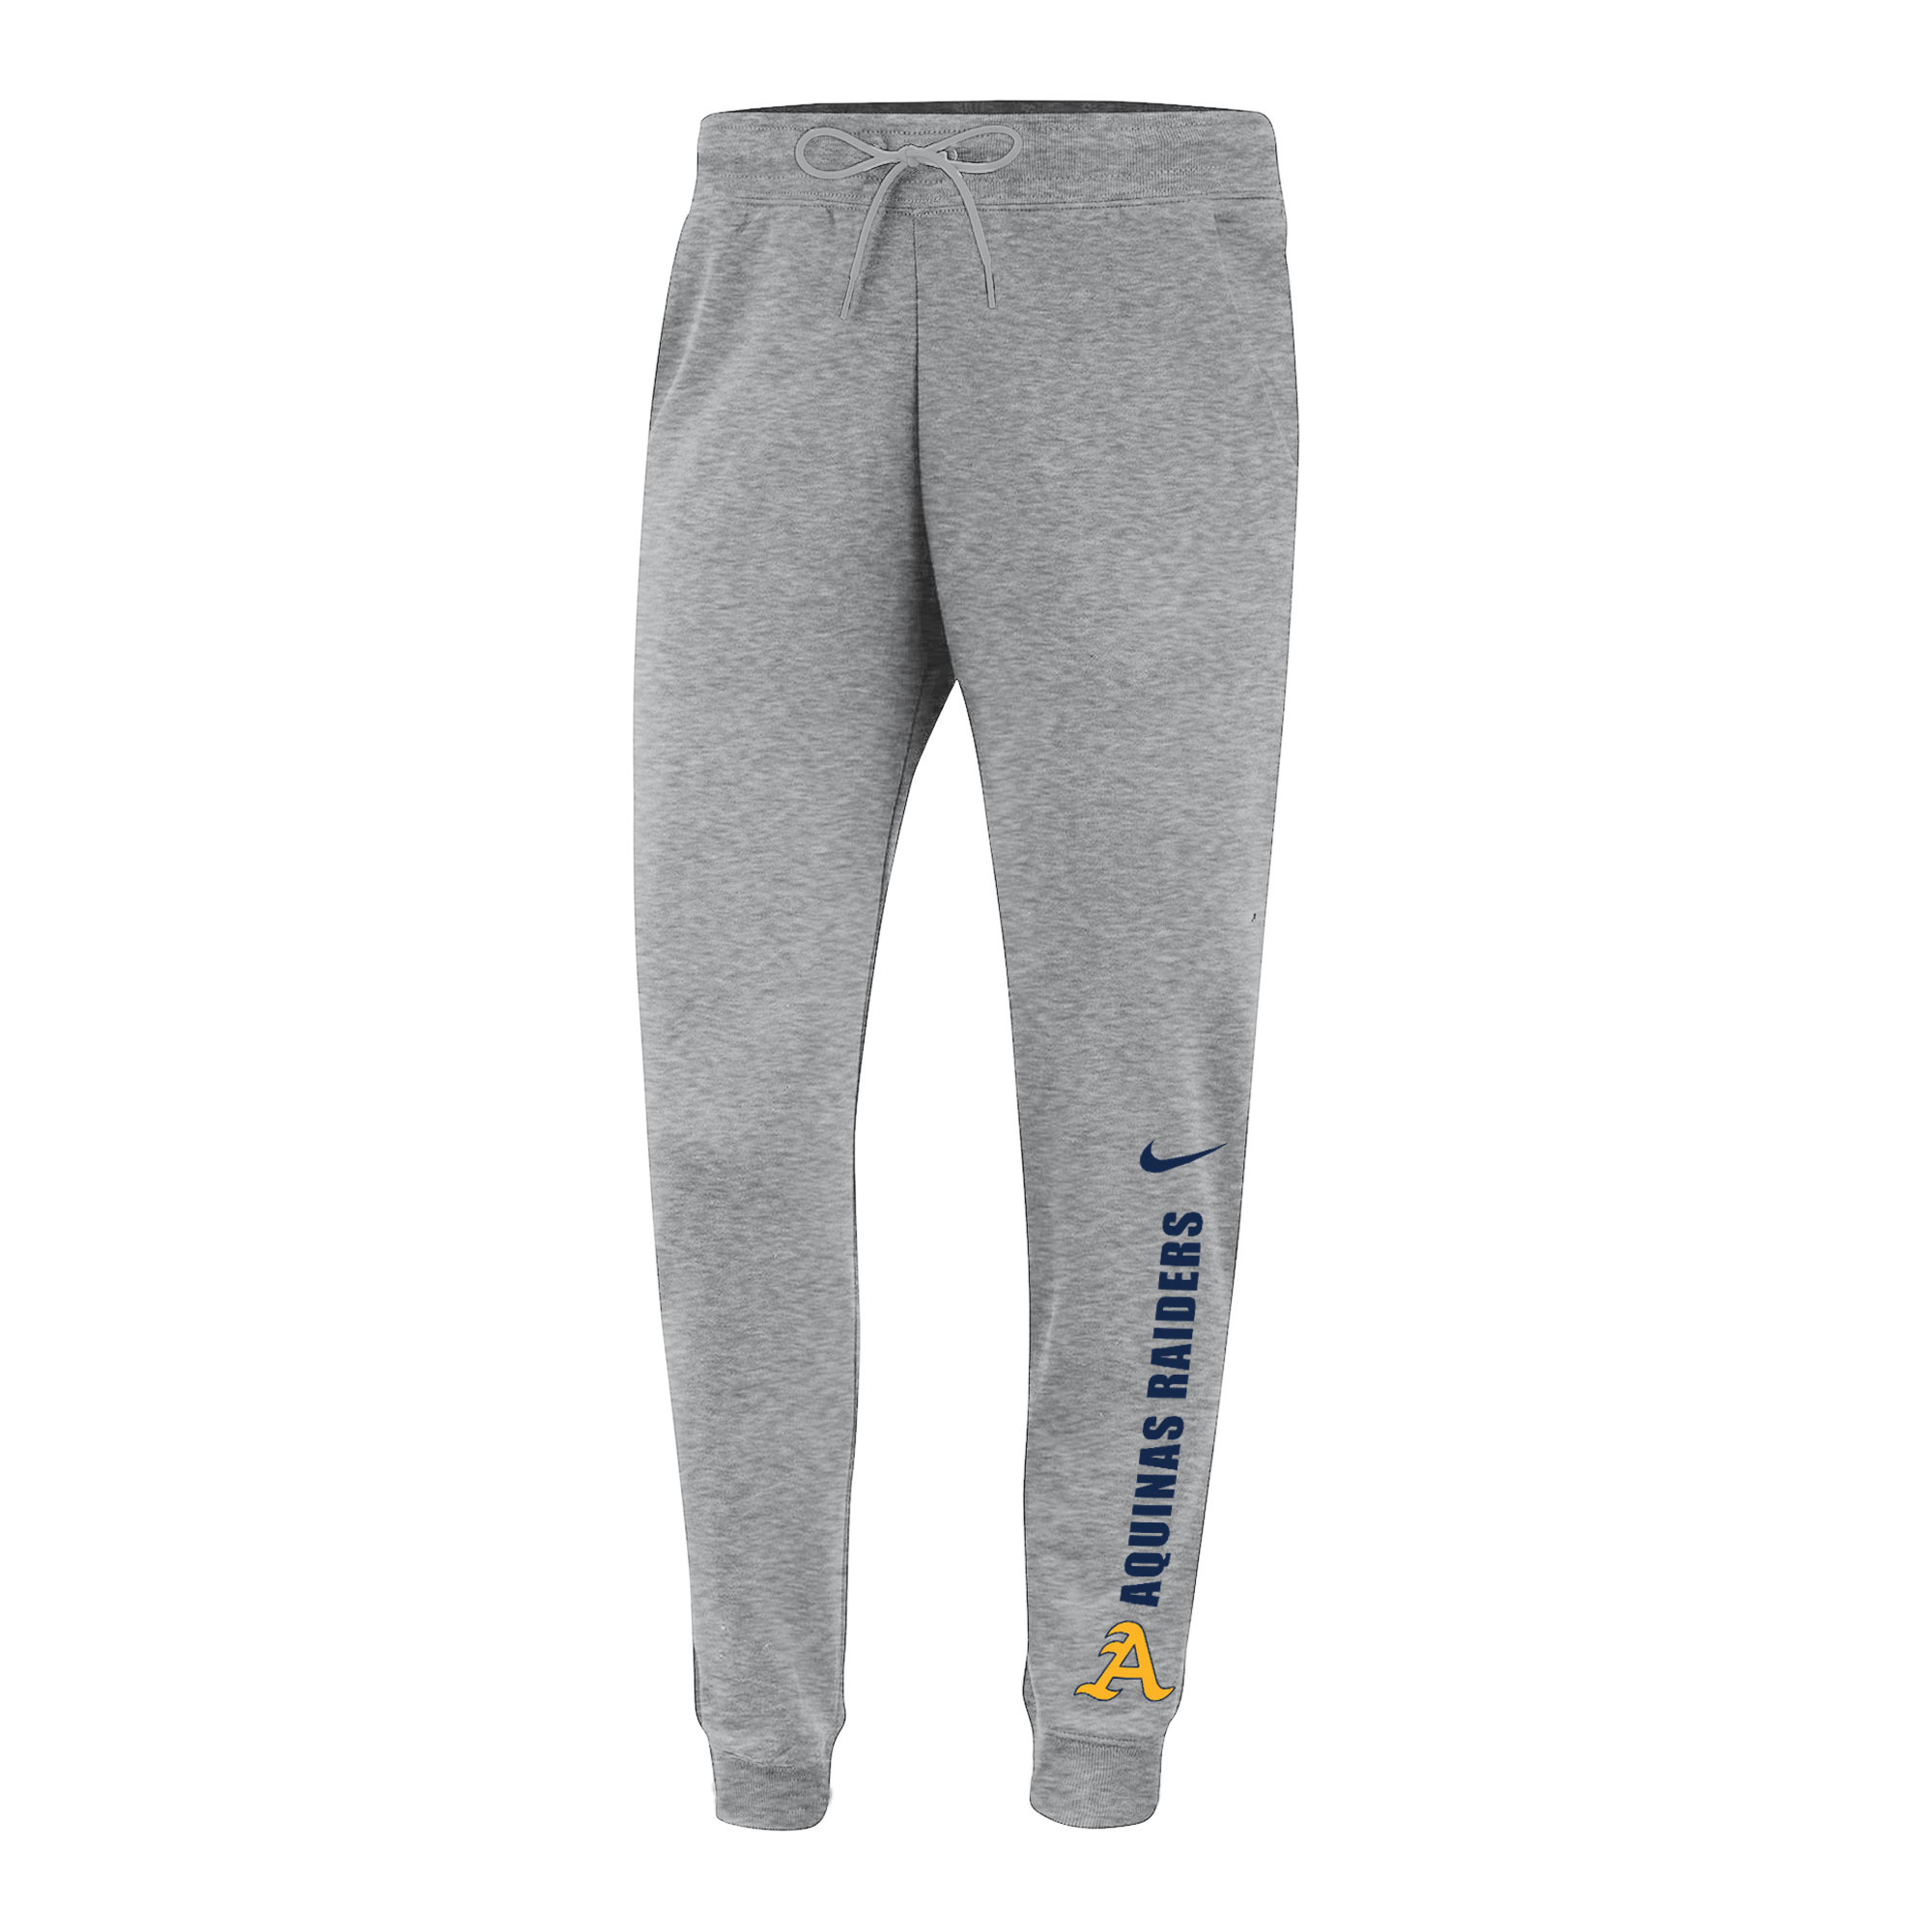 Nike 2020 Women's Fleece Jogger